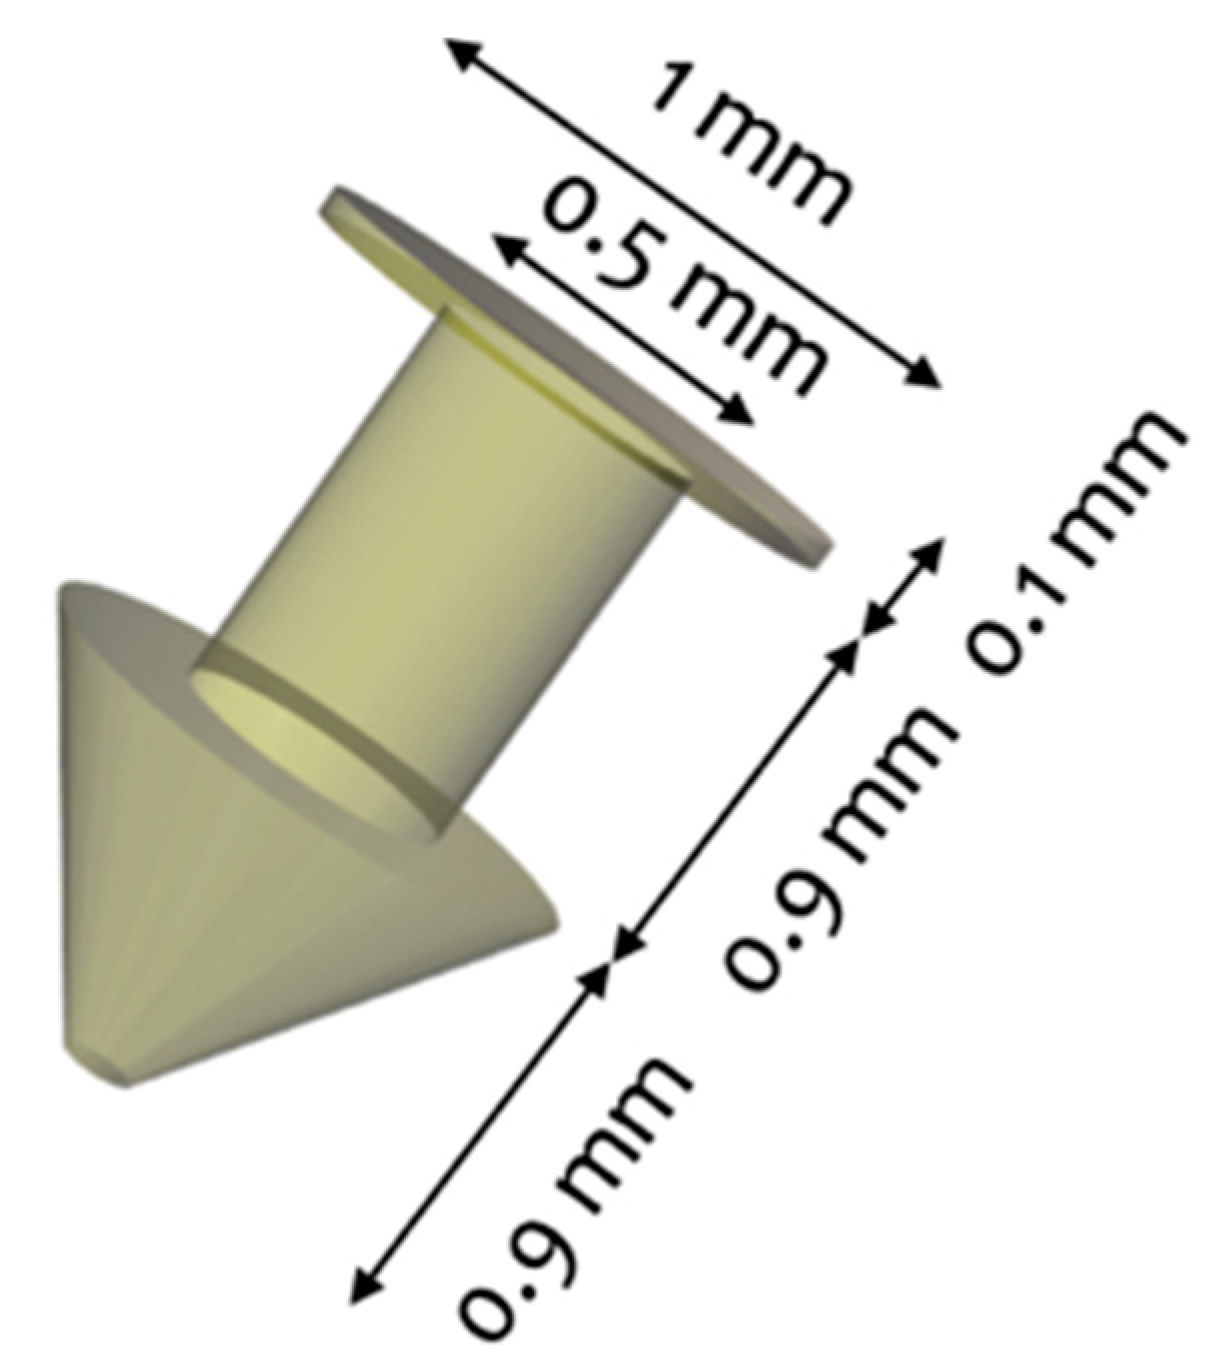 3D design of the punctal plug fabricated by the researchers. Image via MDPI.